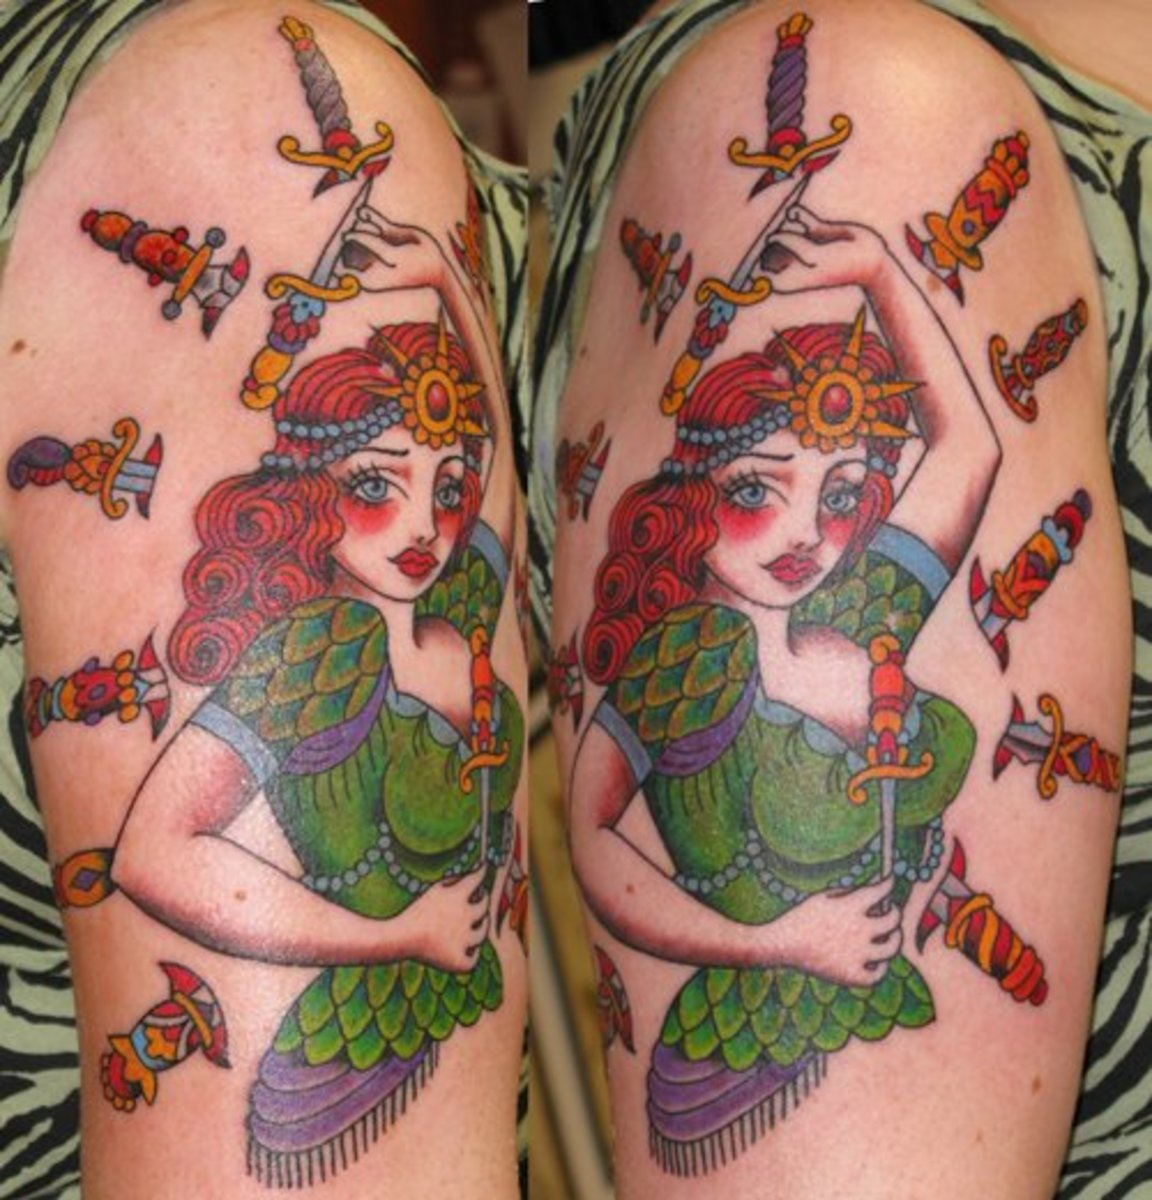 dagger-tattoos-and-meanings